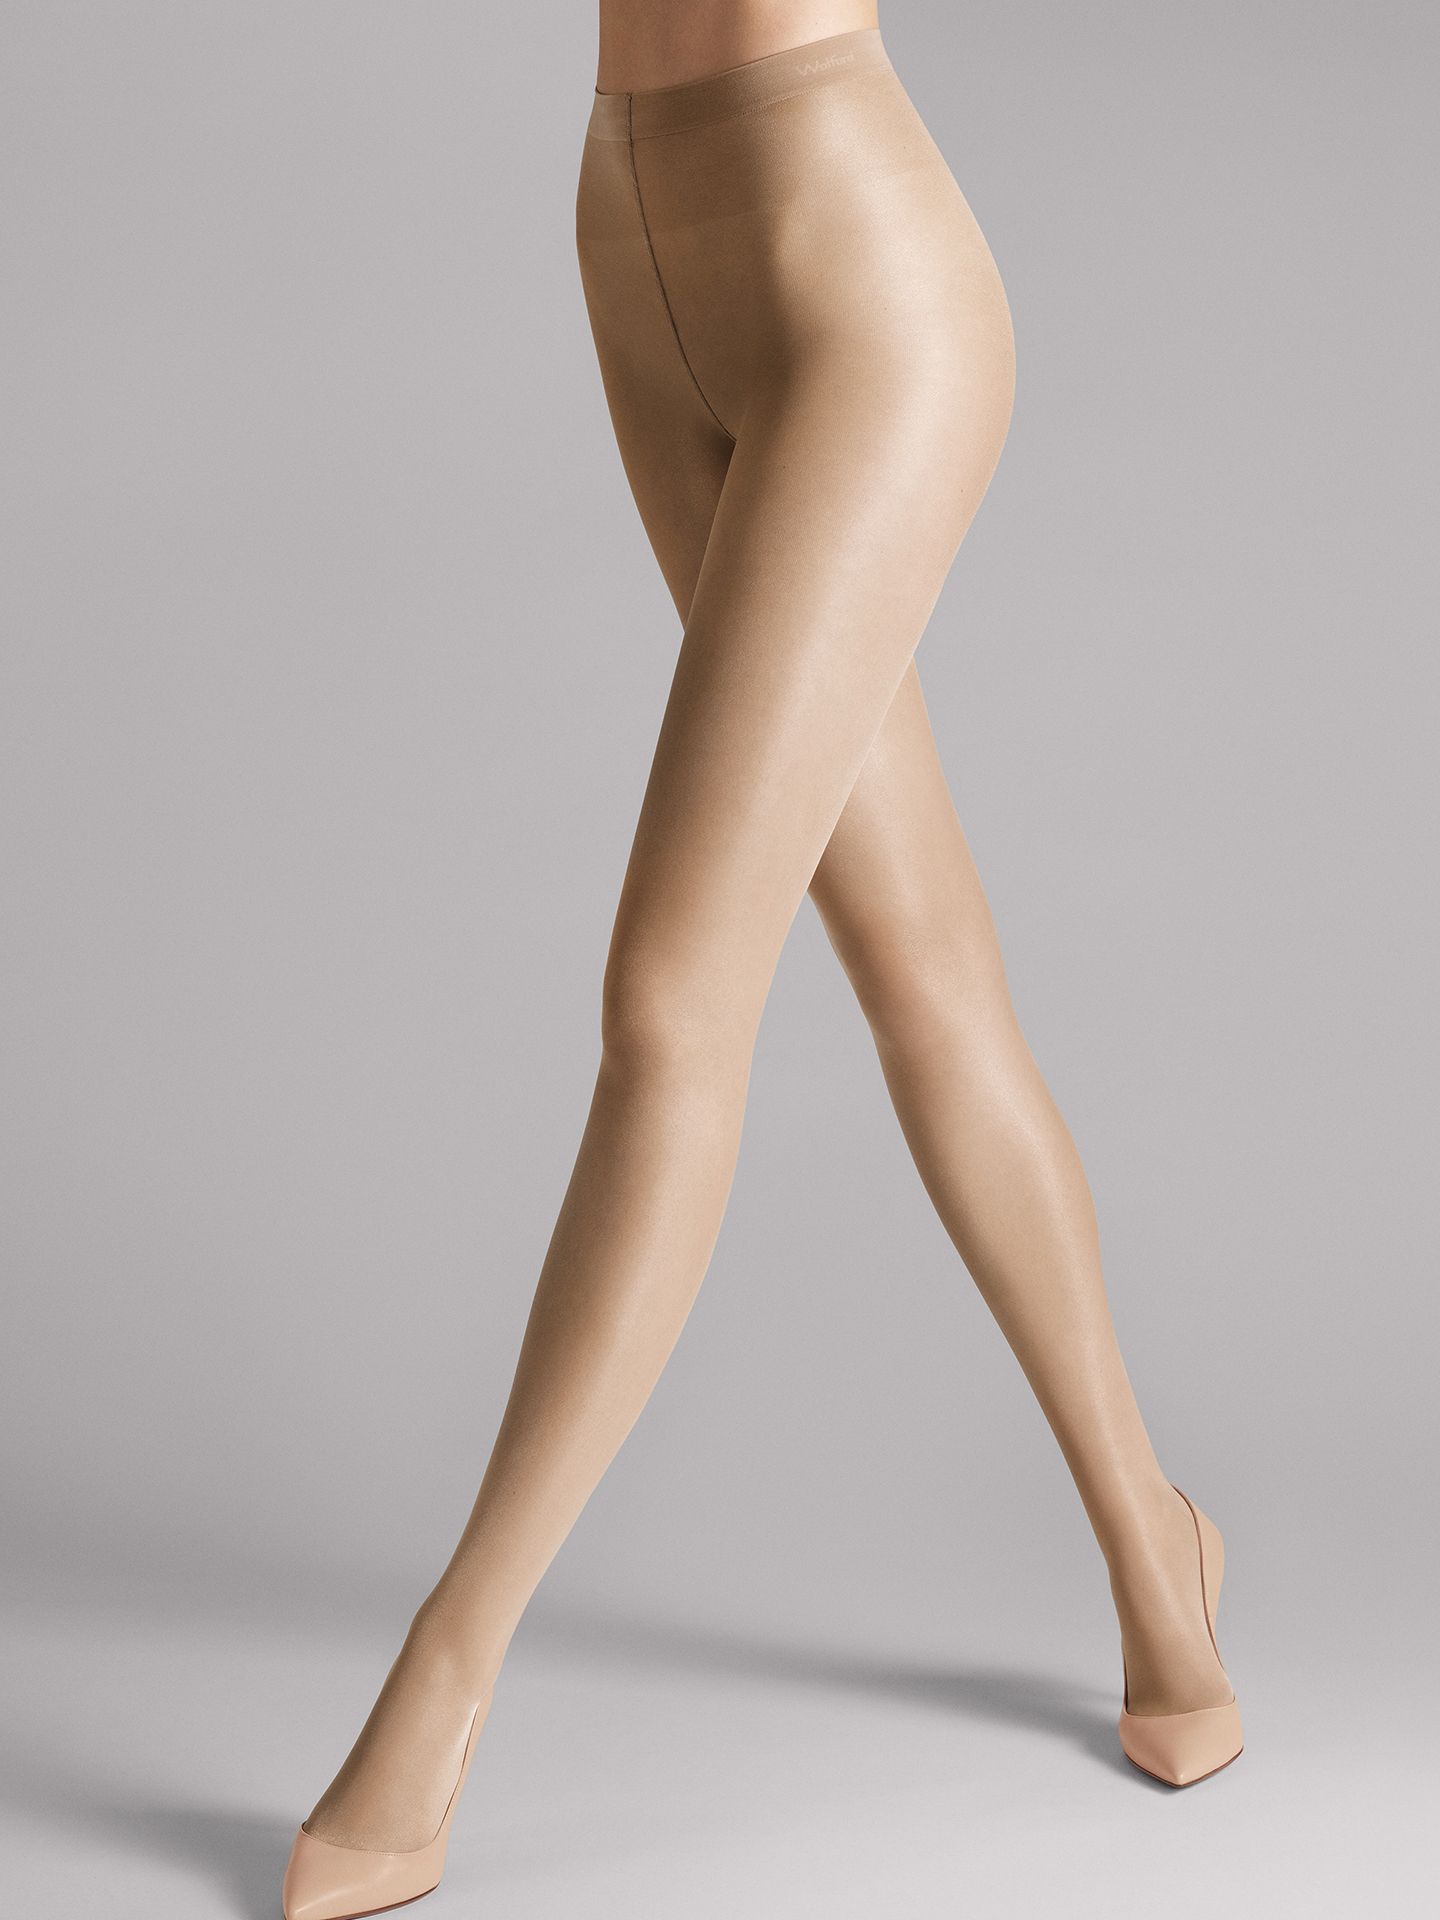 Wolford Apparel & Accessories > Clothing > Collant Satin Touch 20 - 2401 - S